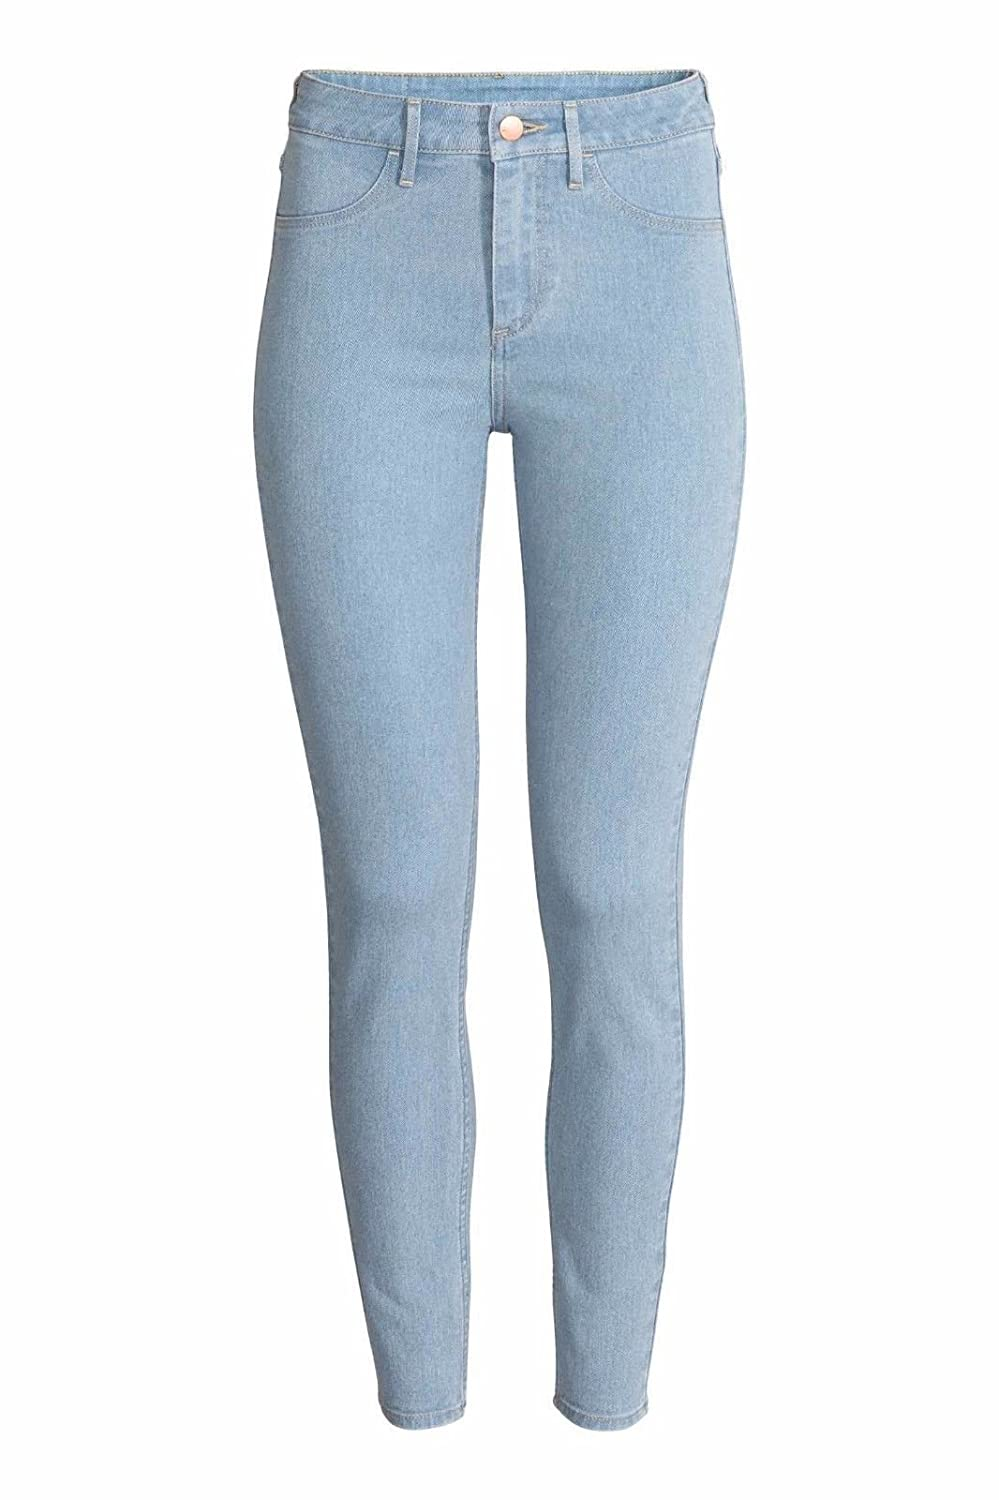 5afe212d Ex Zara Ladies New Woman Sand wash Denim Spandex Summer Jeans Slim Fit  Trouser: Amazon.co.uk: Clothing